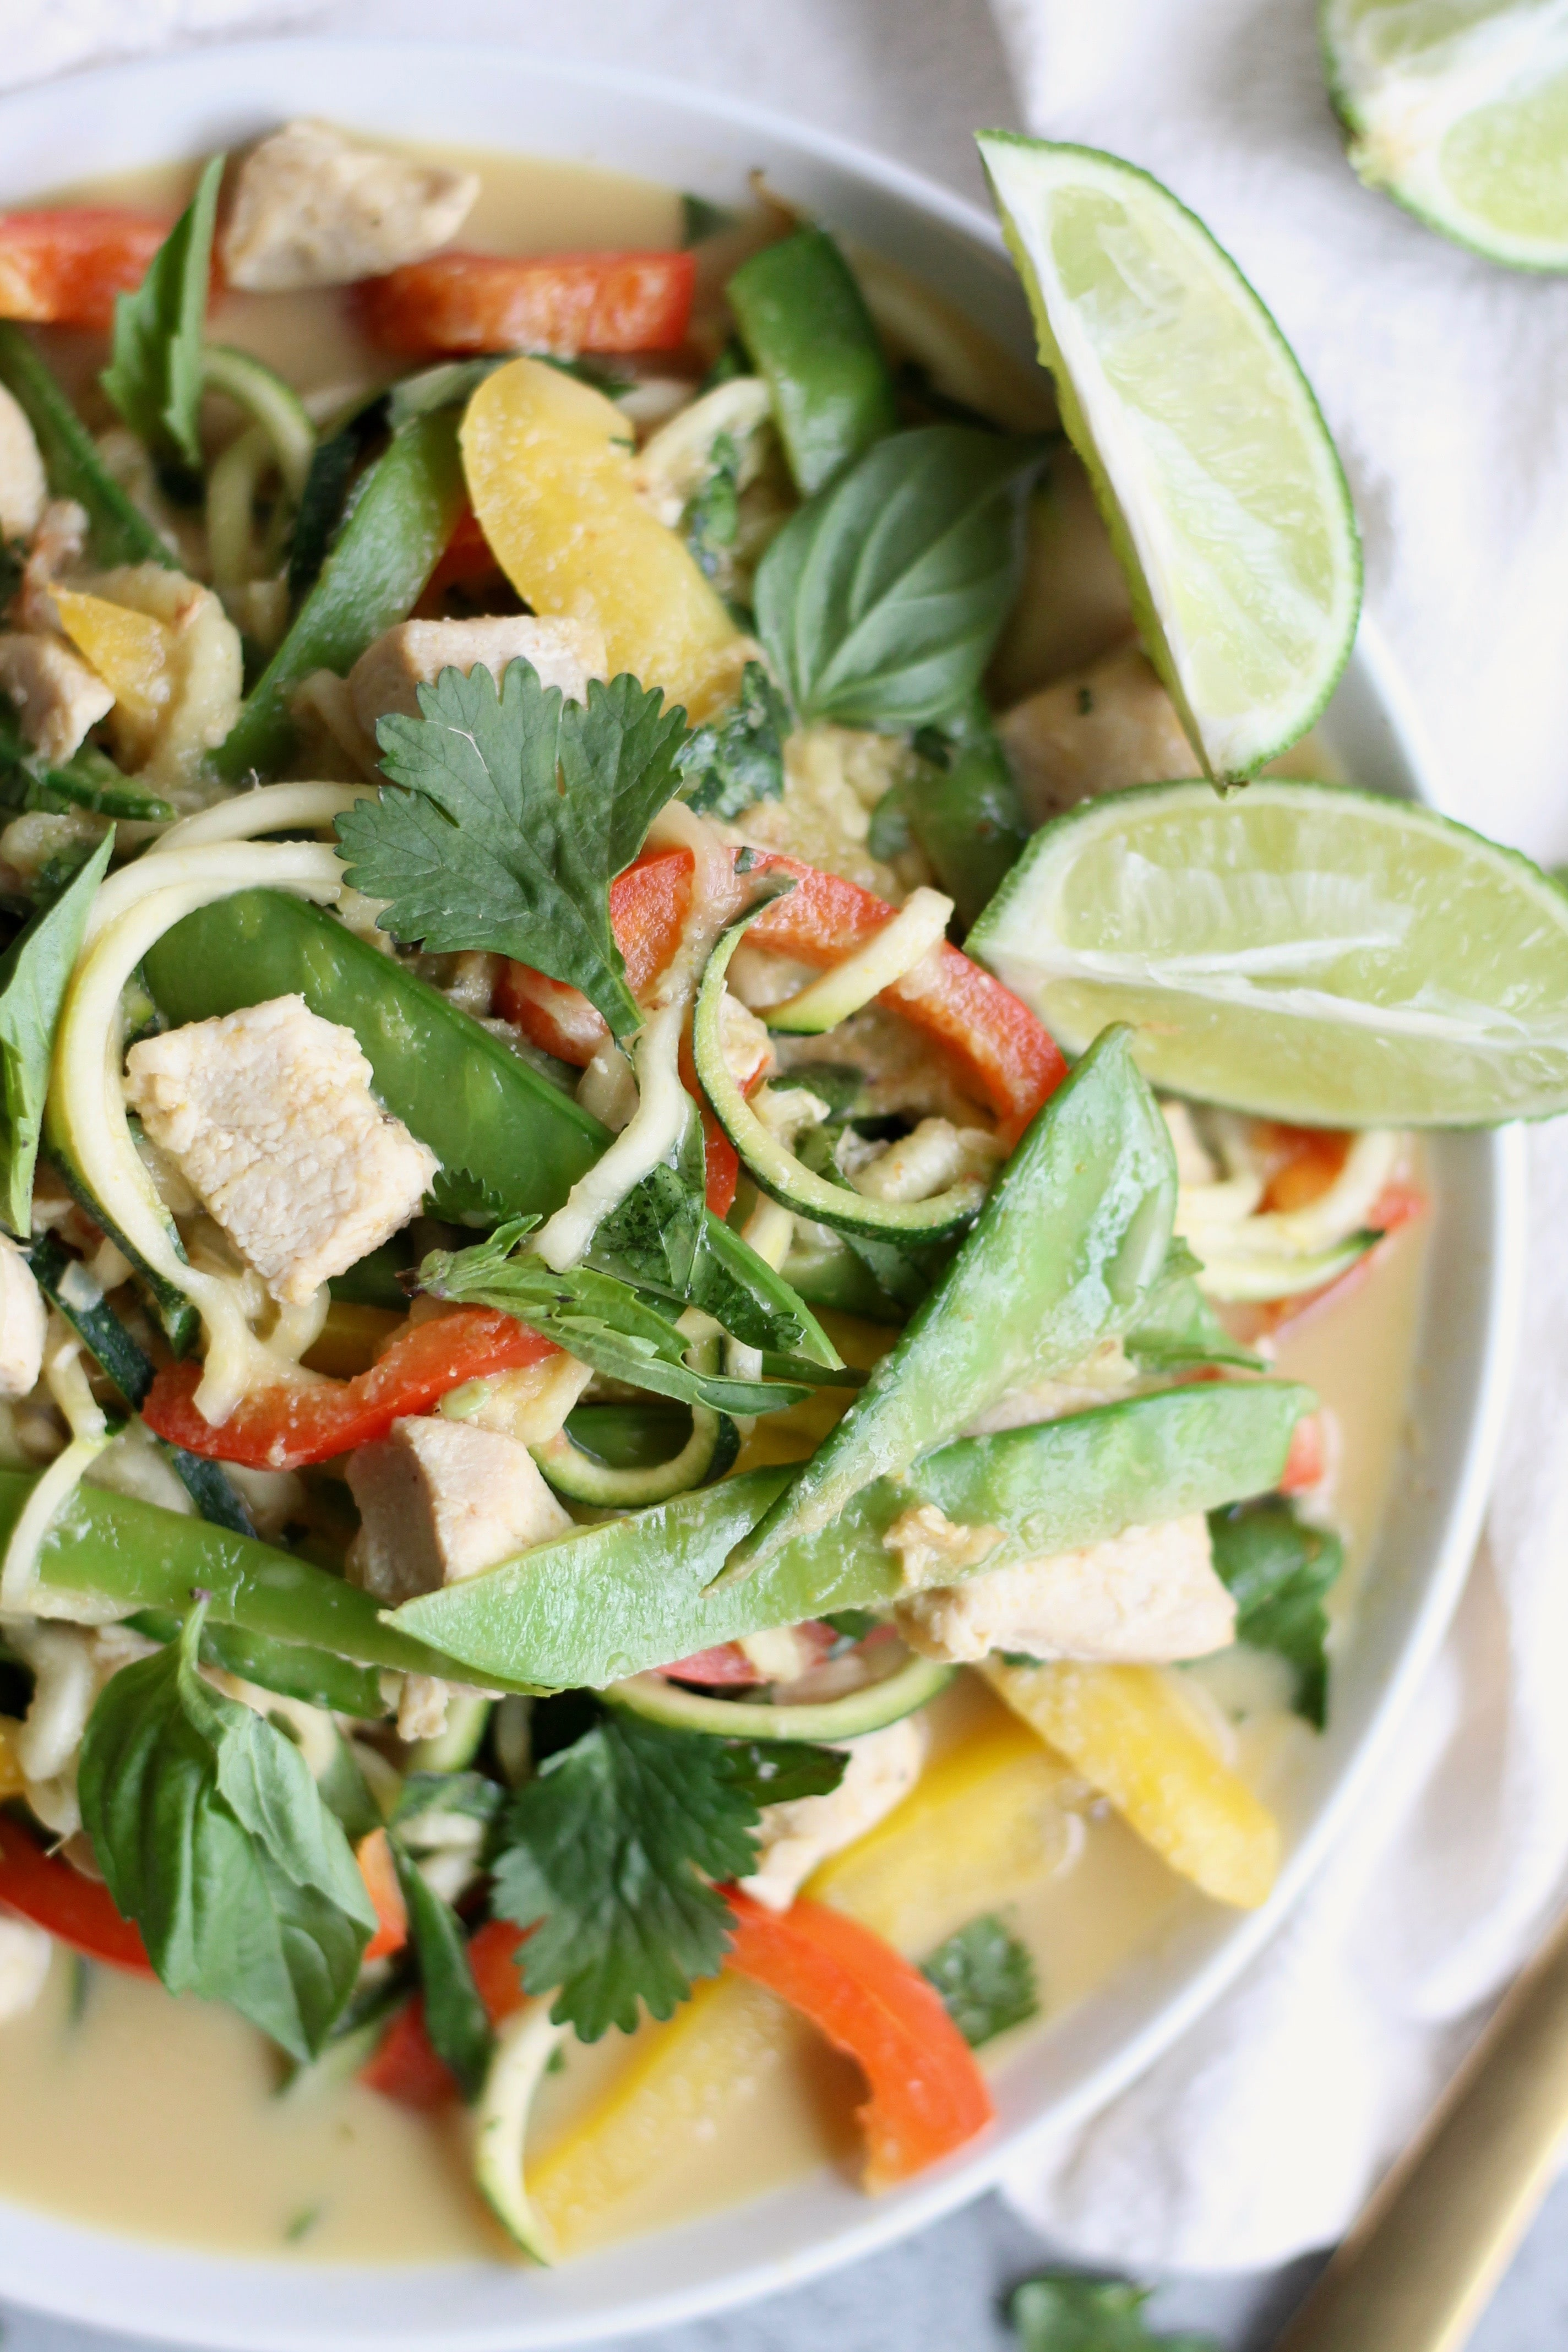 Thai Green Curry Chicken Vegetable Zucchini Noodles